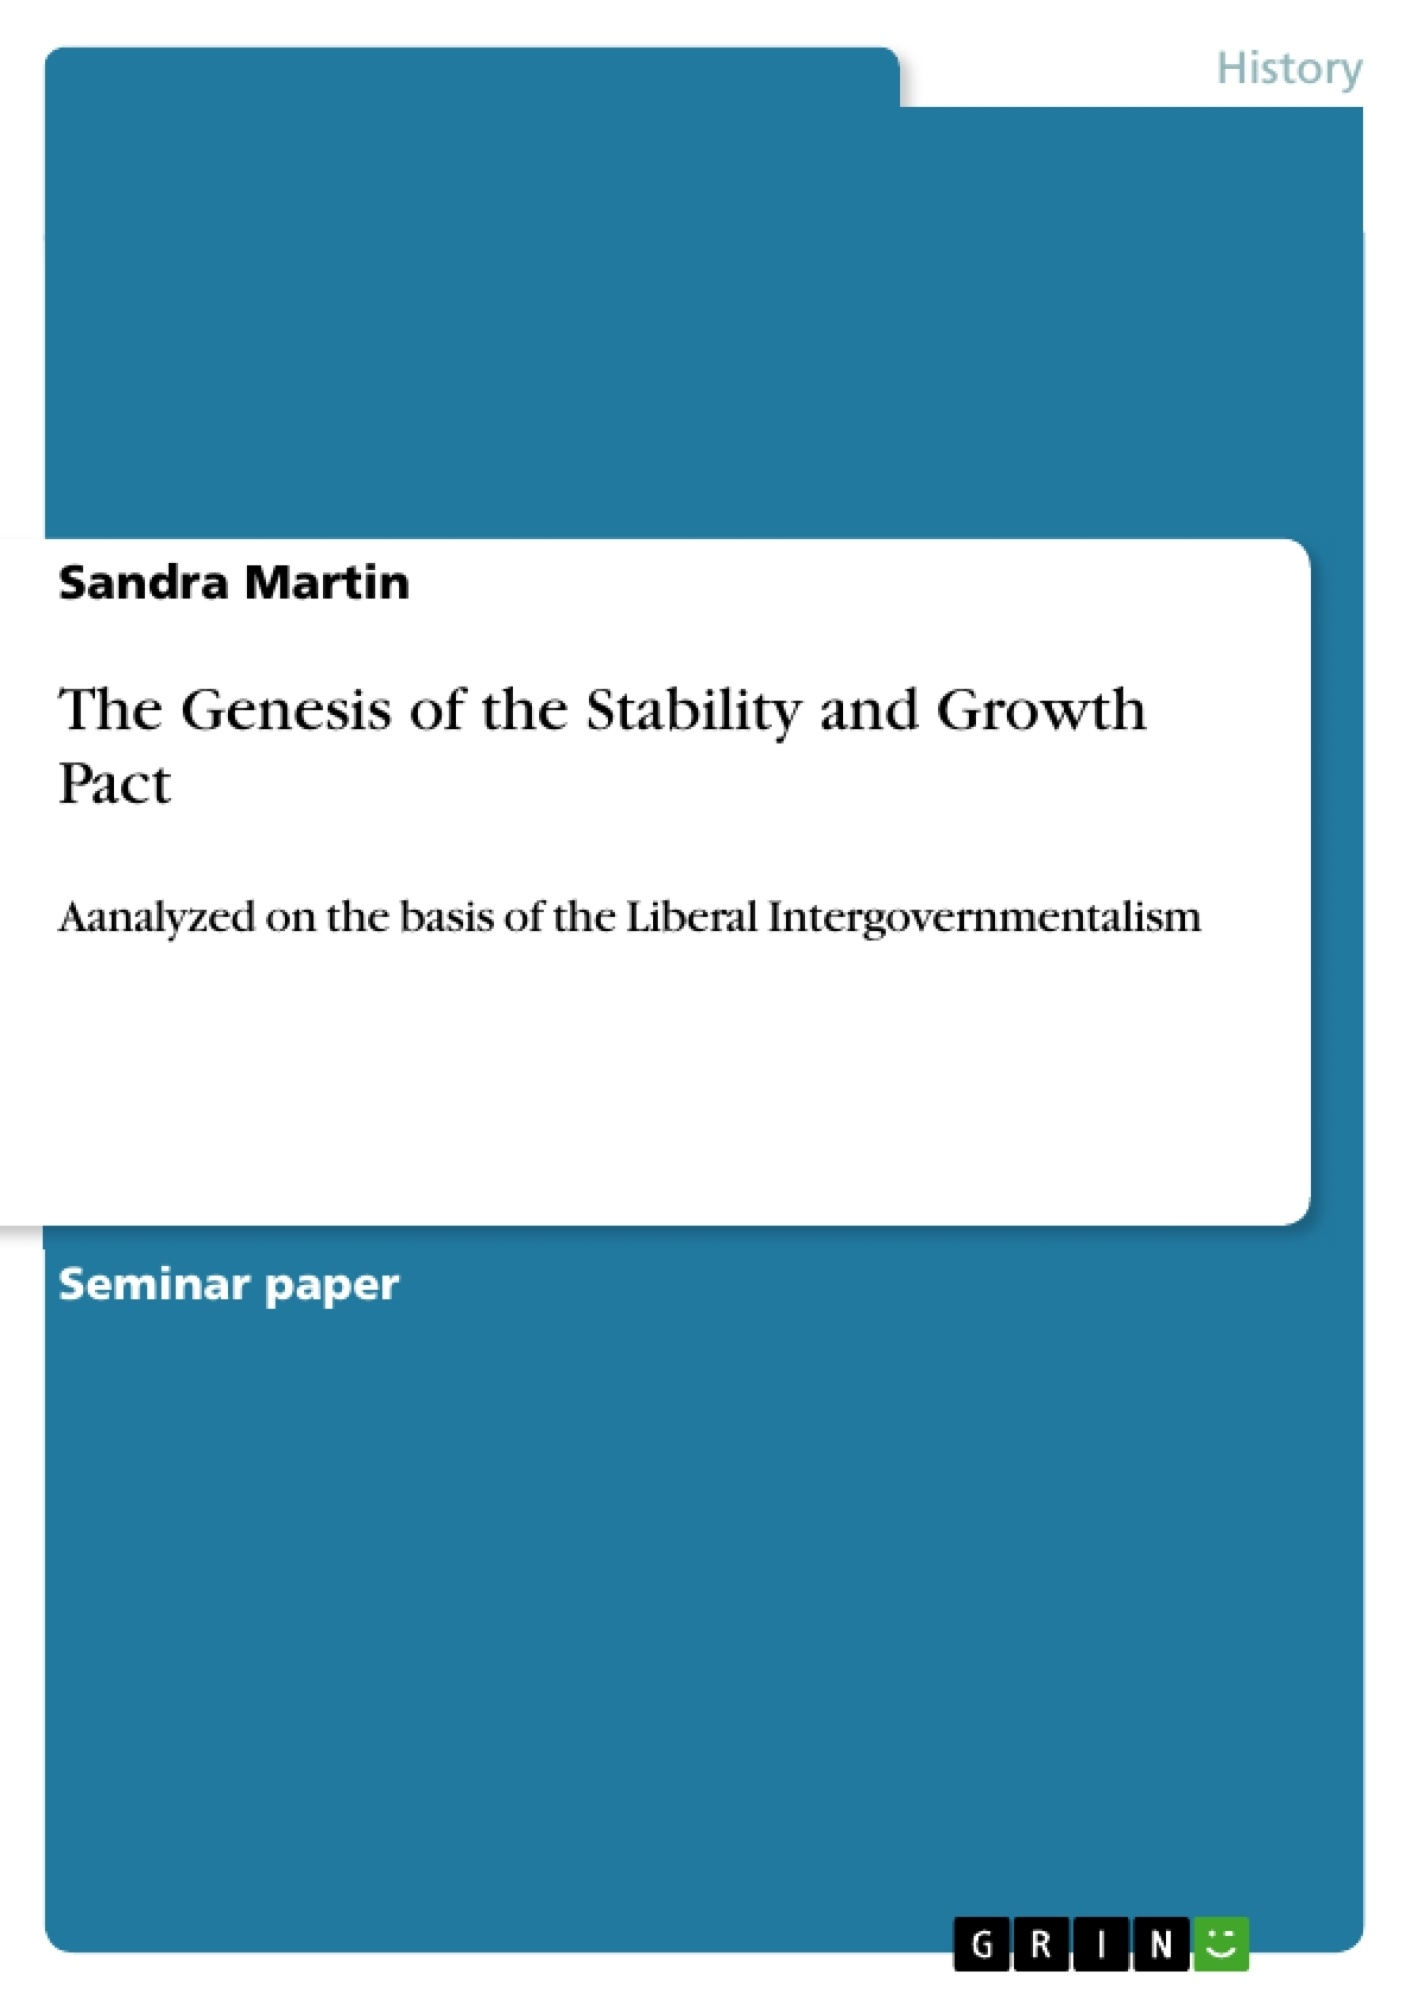 Title: The Genesis of the Stability and Growth Pact